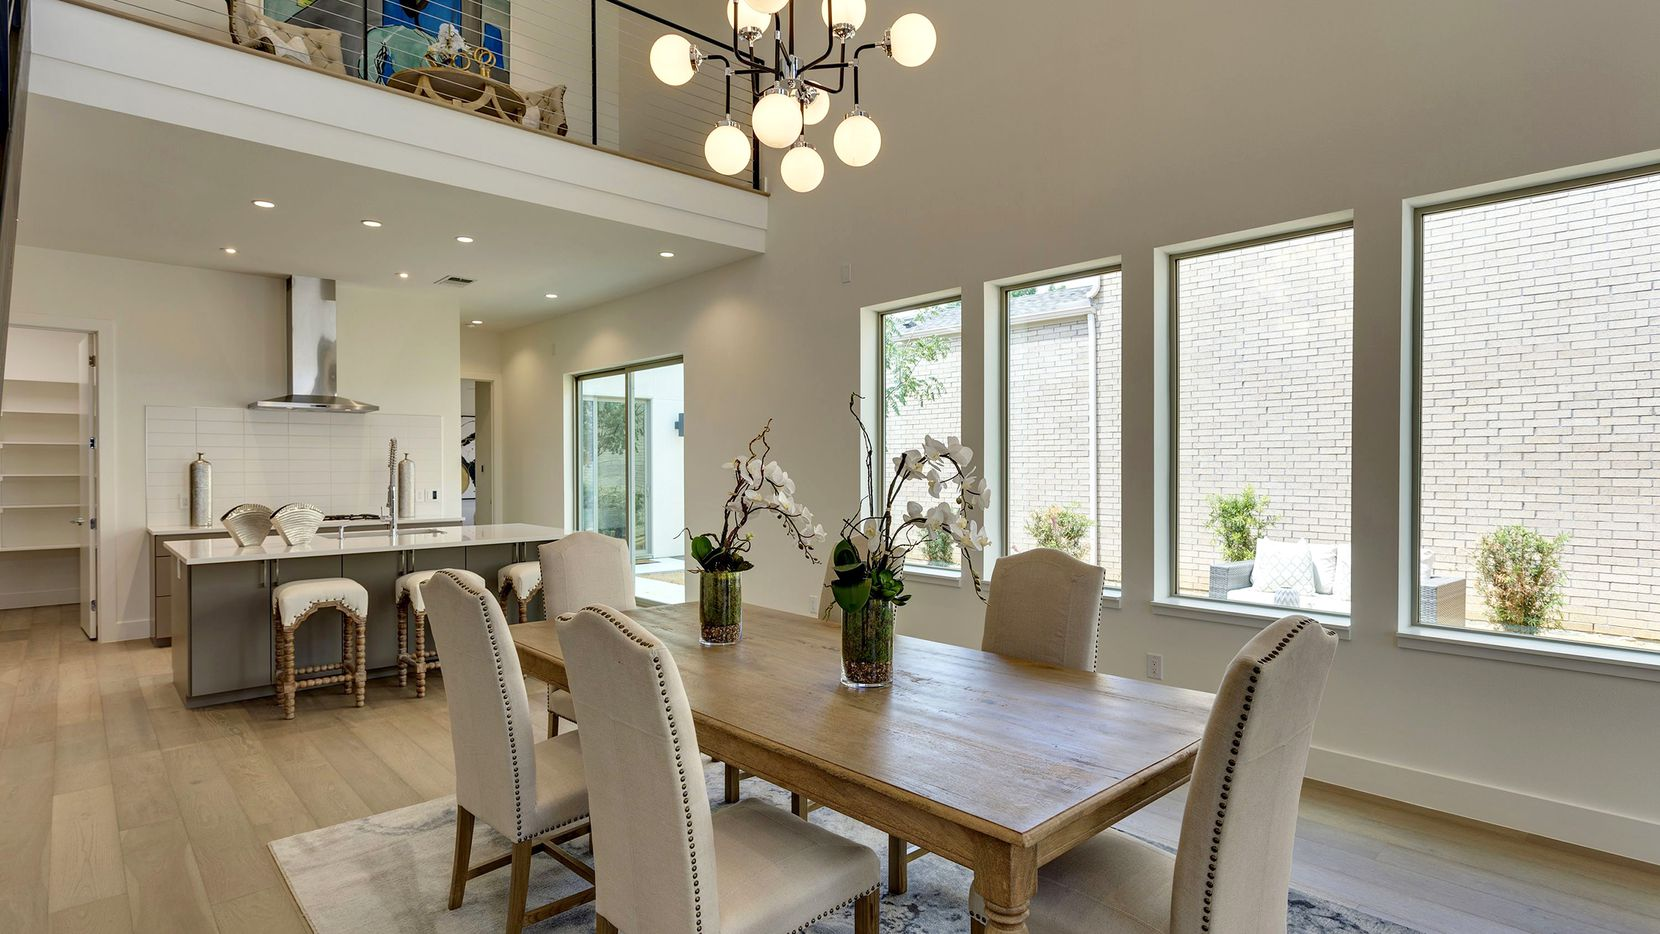 The three-bedroom, 3½-bath modern home at 3352 Walchard Court will be open from 2 to 4 p.m. on Nov. 17.